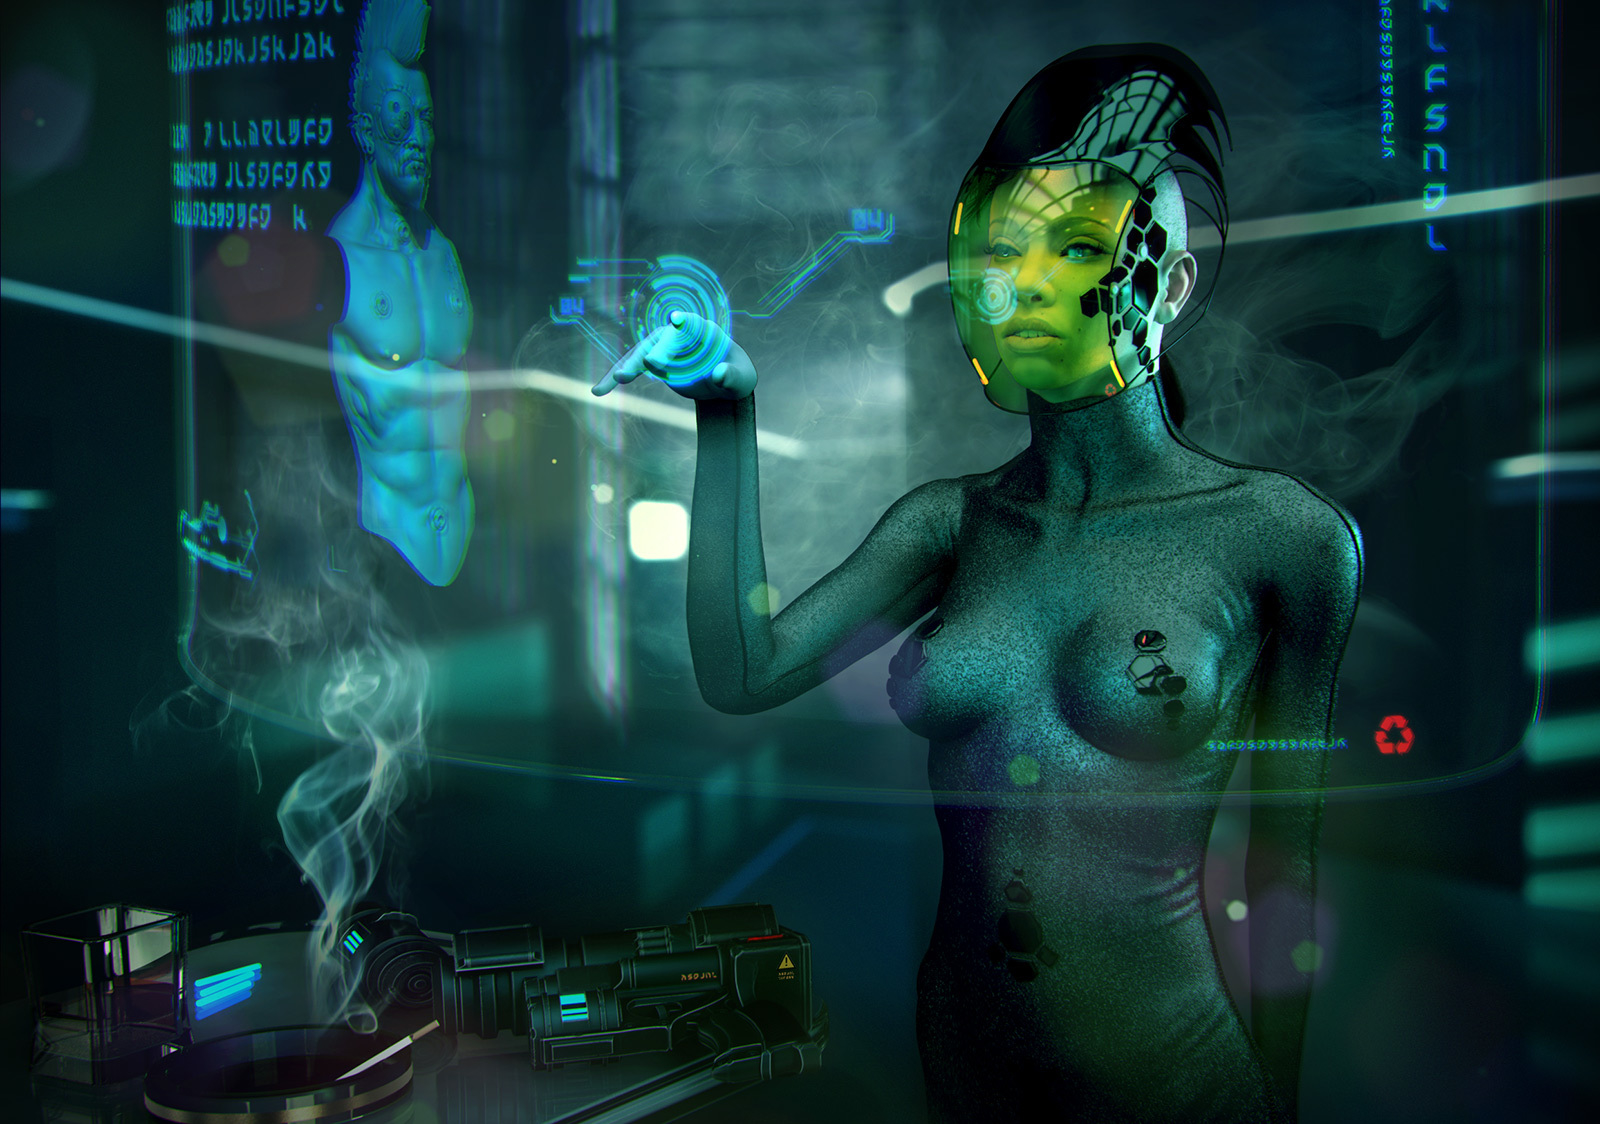 Naked women of science fiction